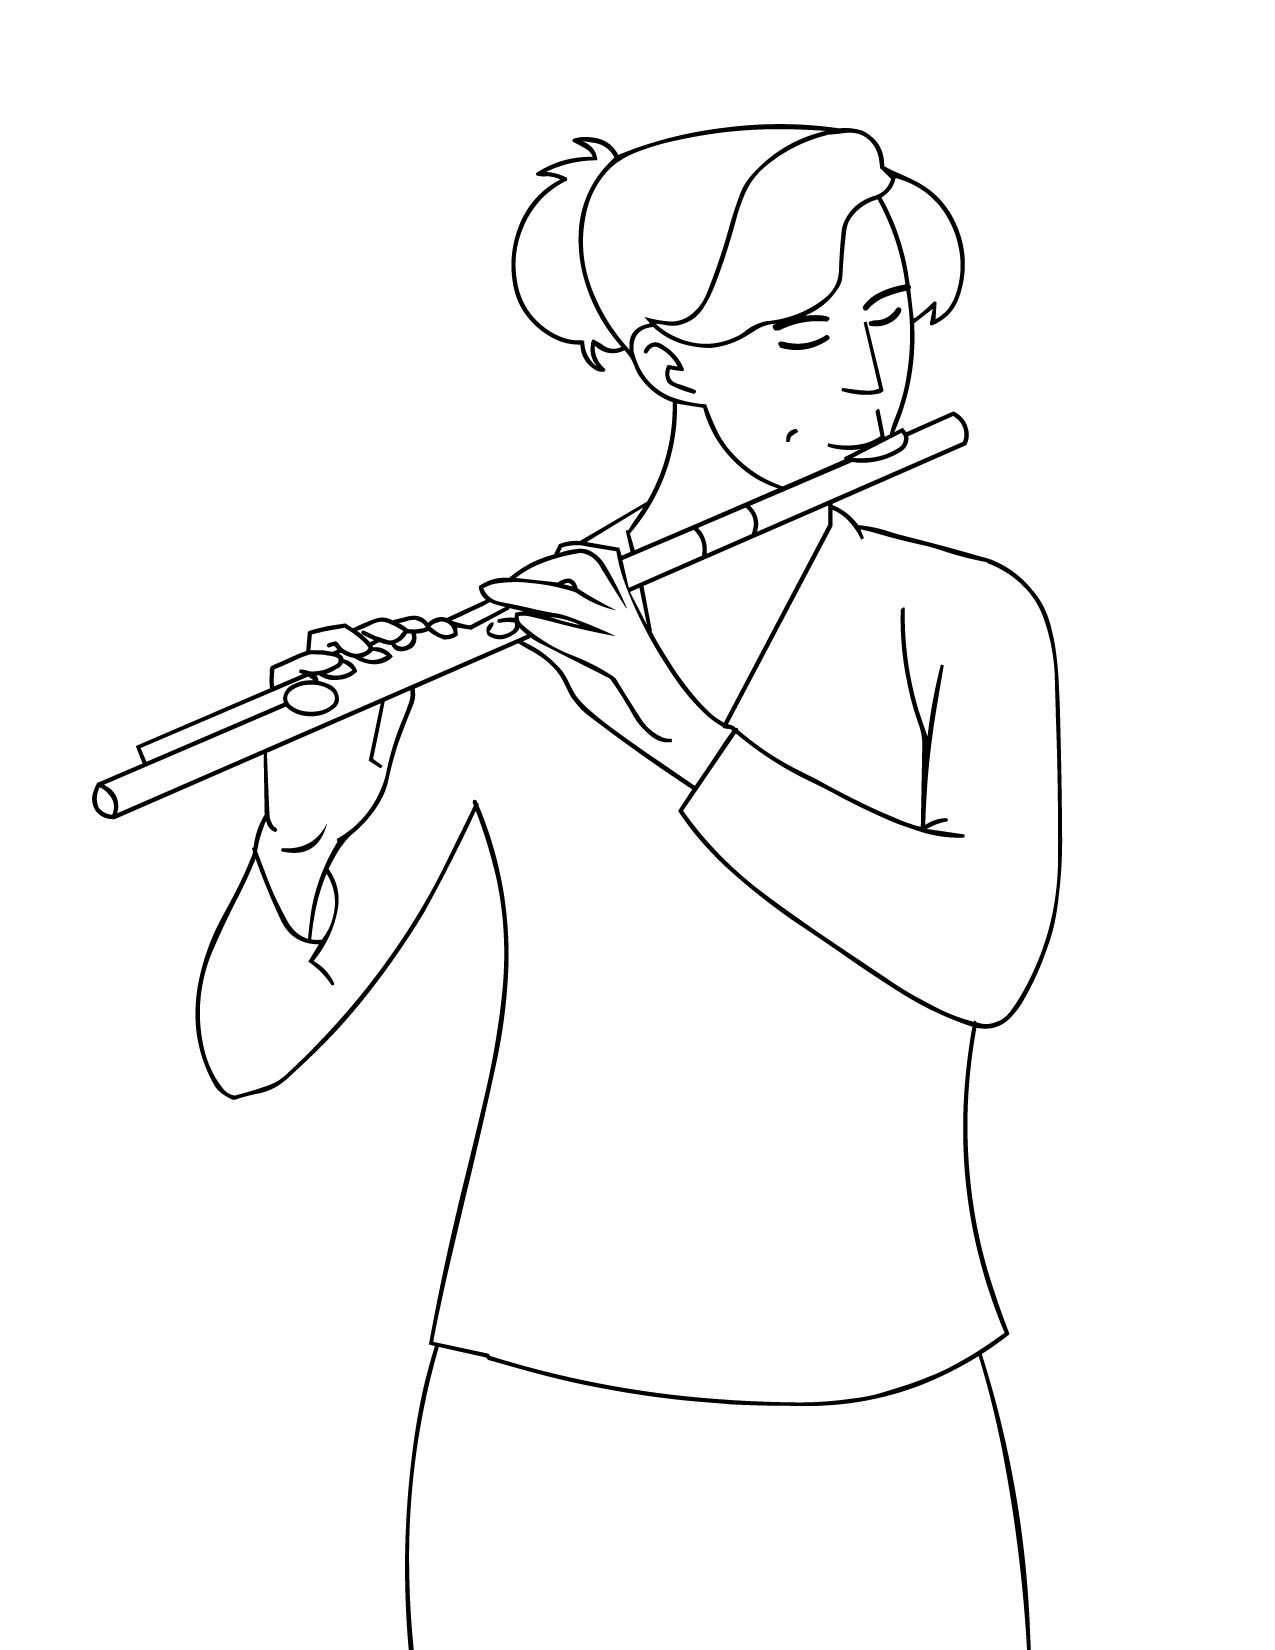 Flute coloring #3, Download drawings